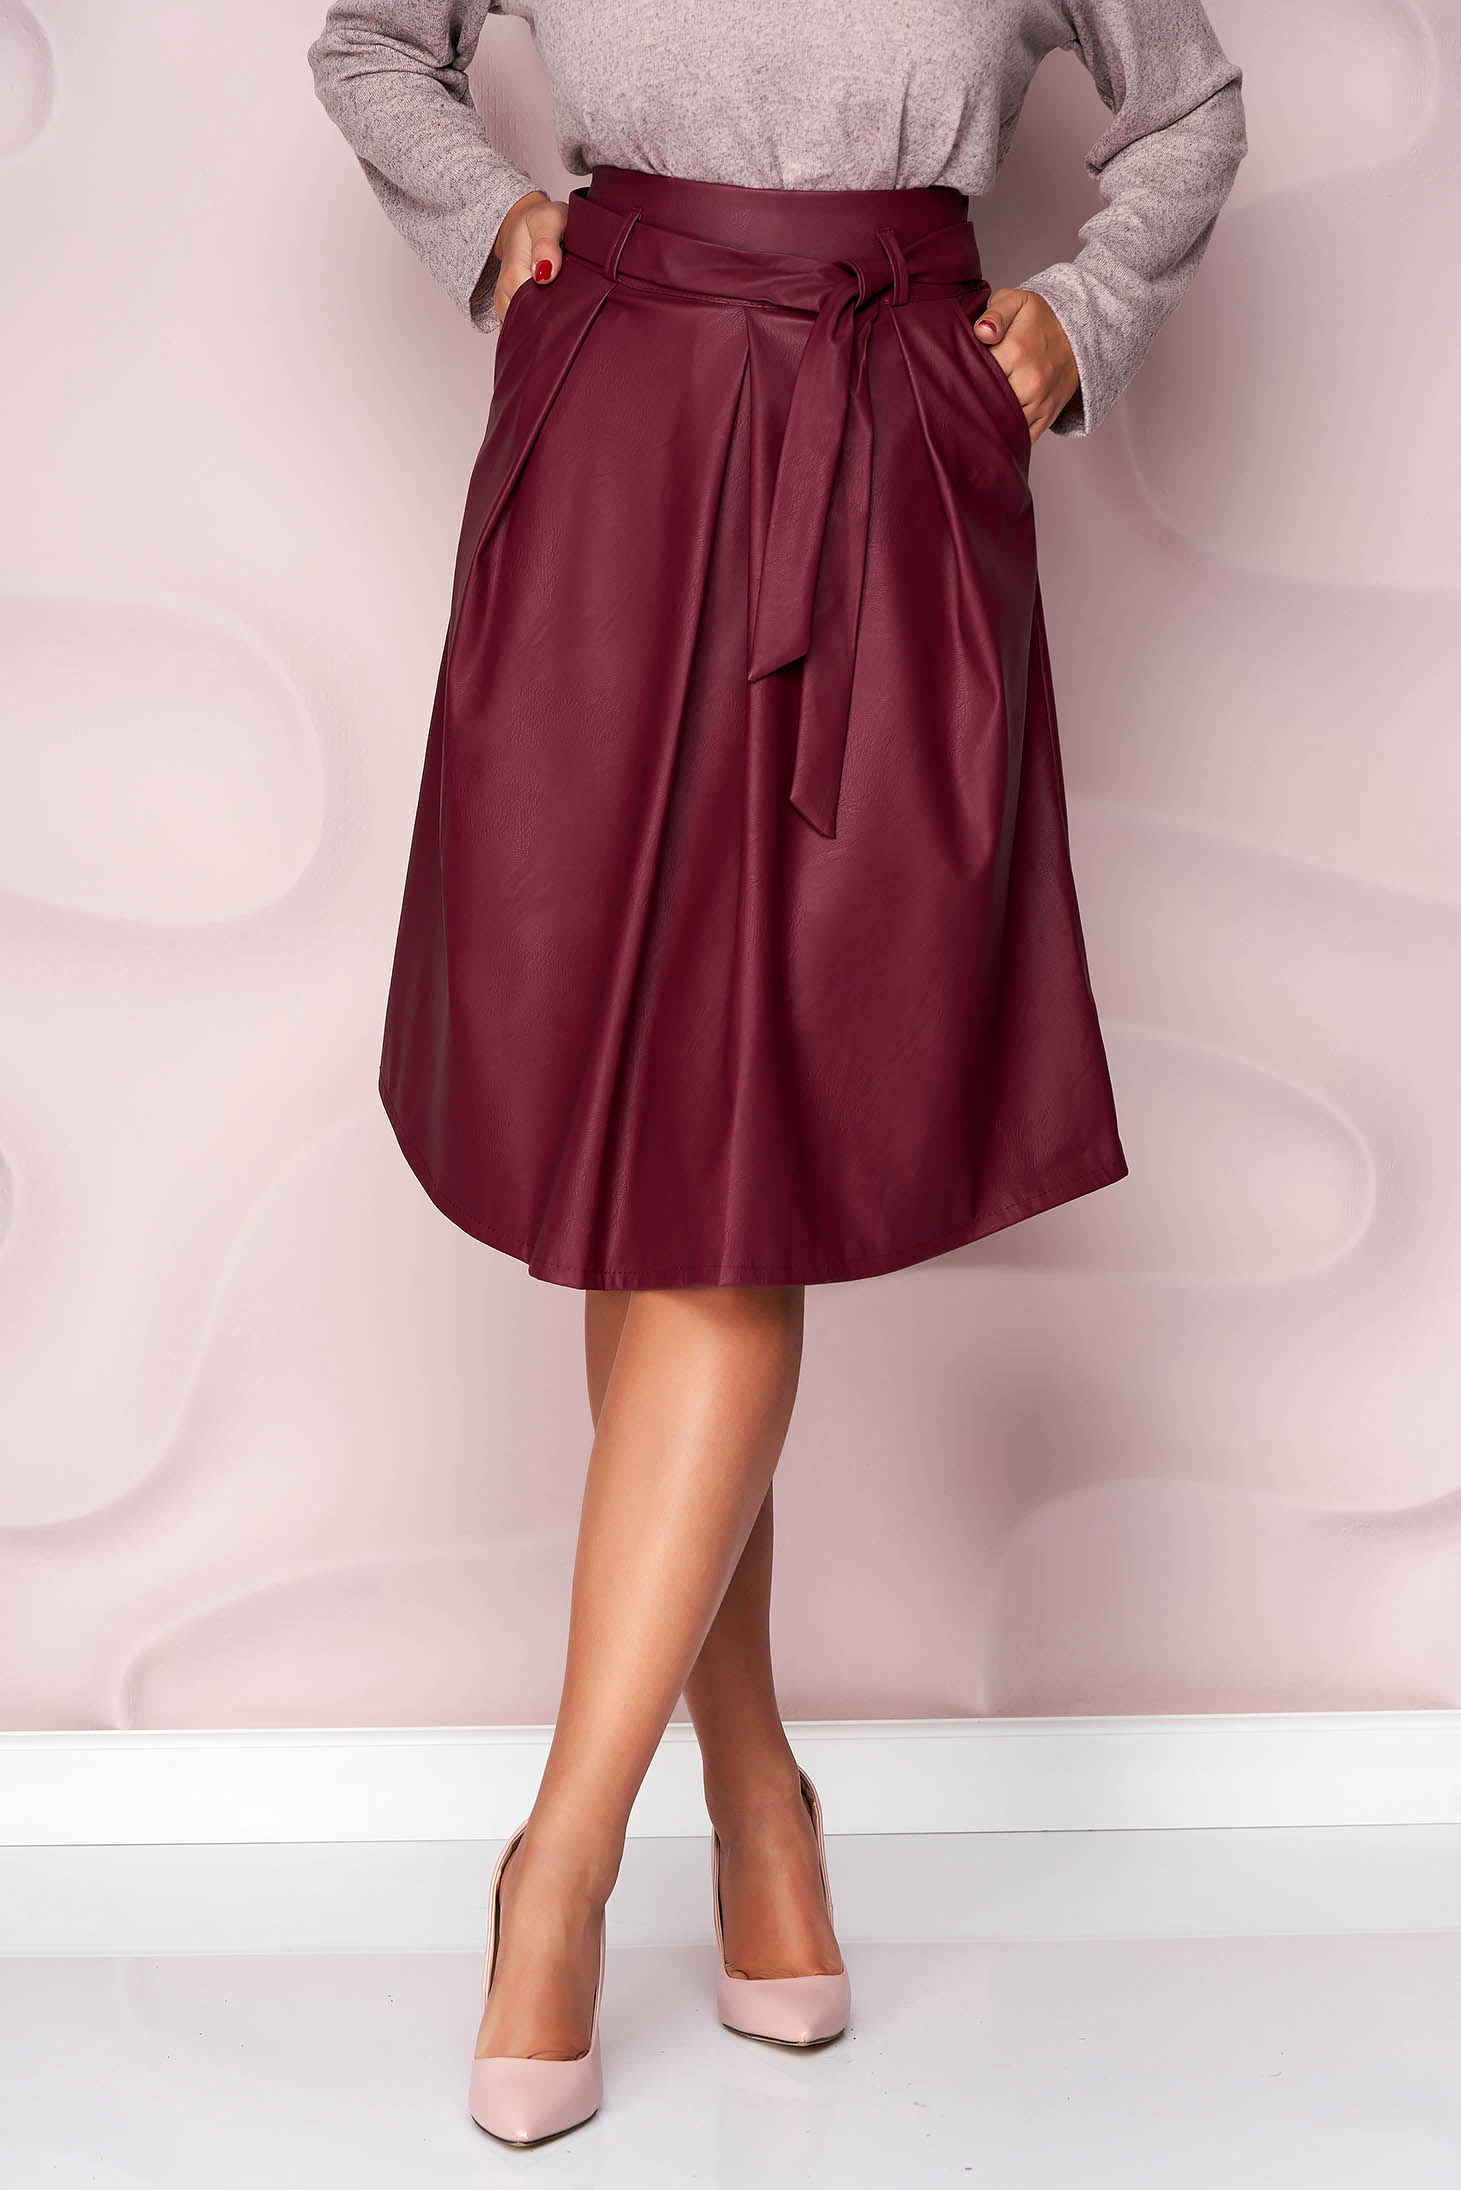 Burgundy skirt midi cloche office from ecological leather from elastic fabric accessorized with tied waistband